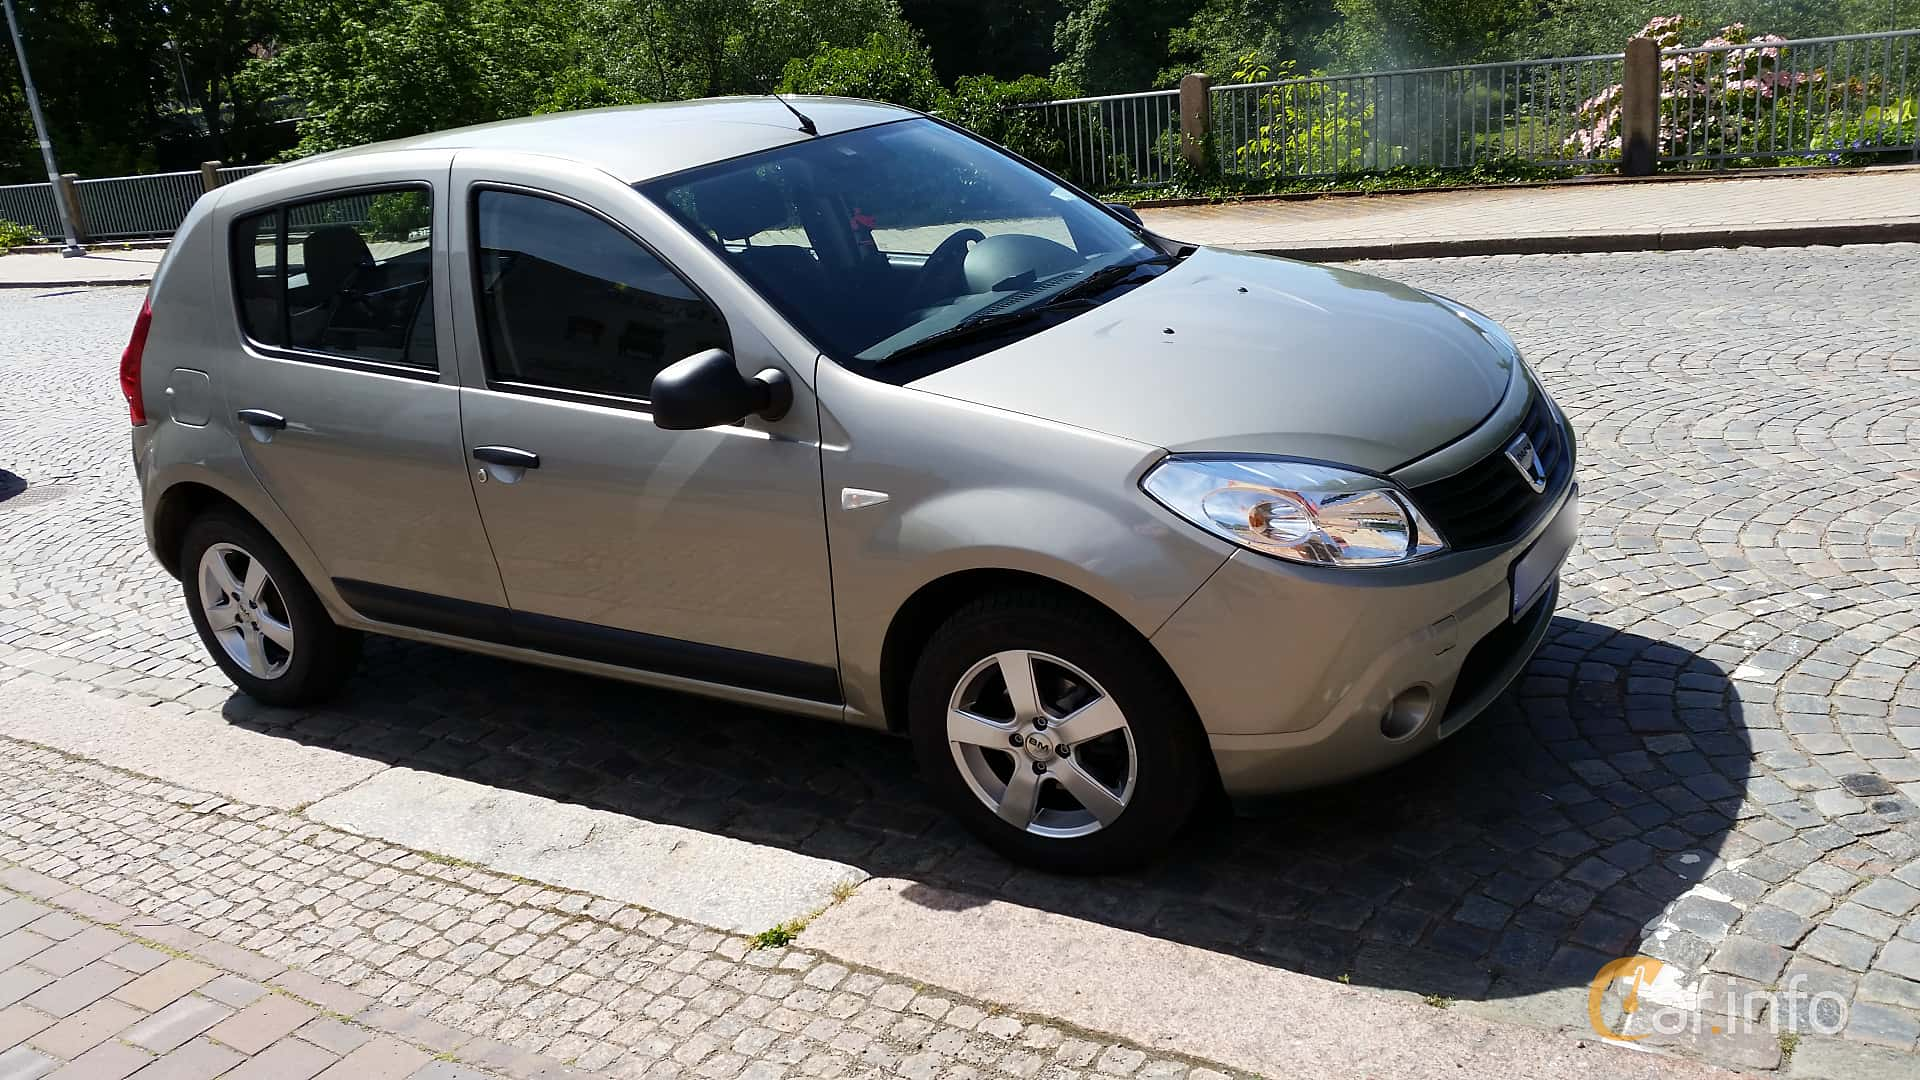 dacia sandero 1st generation 1 6 manual 5 speed. Black Bedroom Furniture Sets. Home Design Ideas